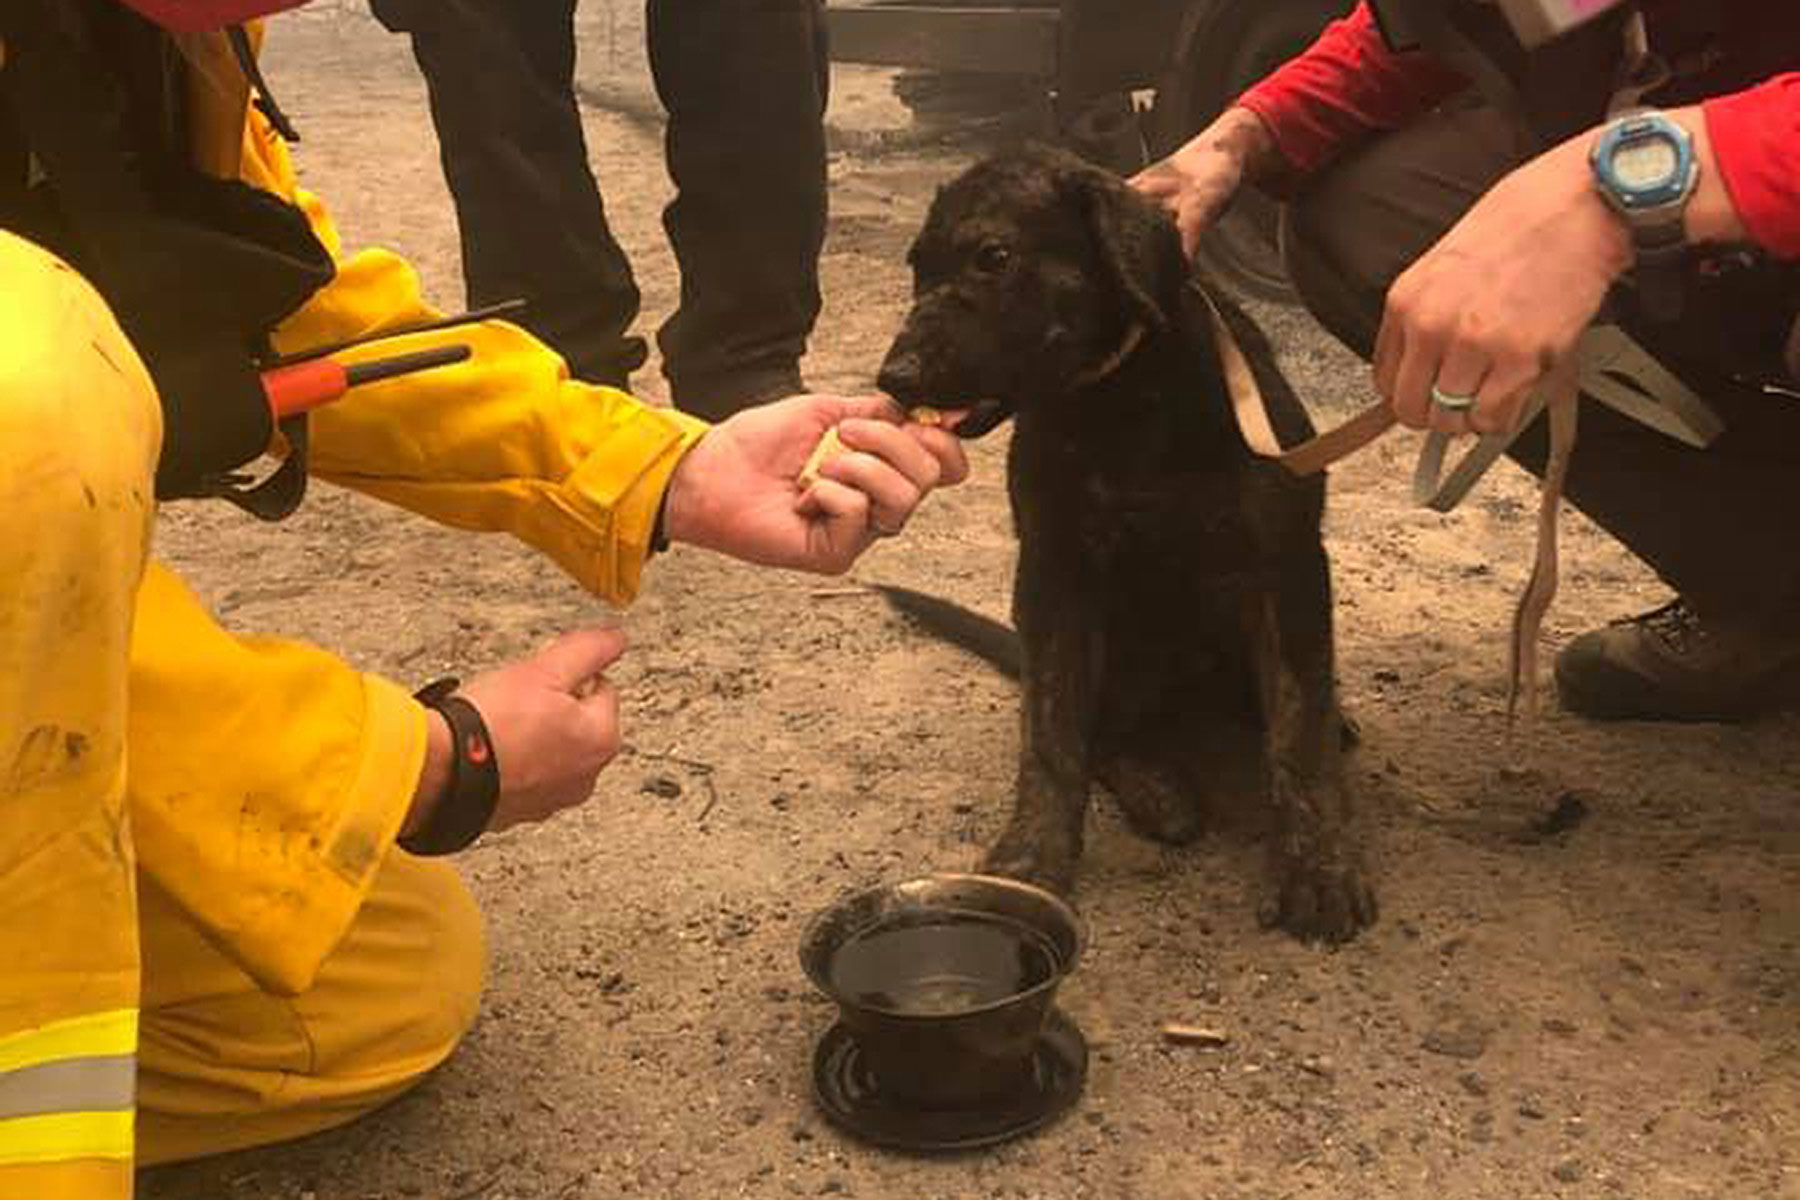 rescue workers feeding dog